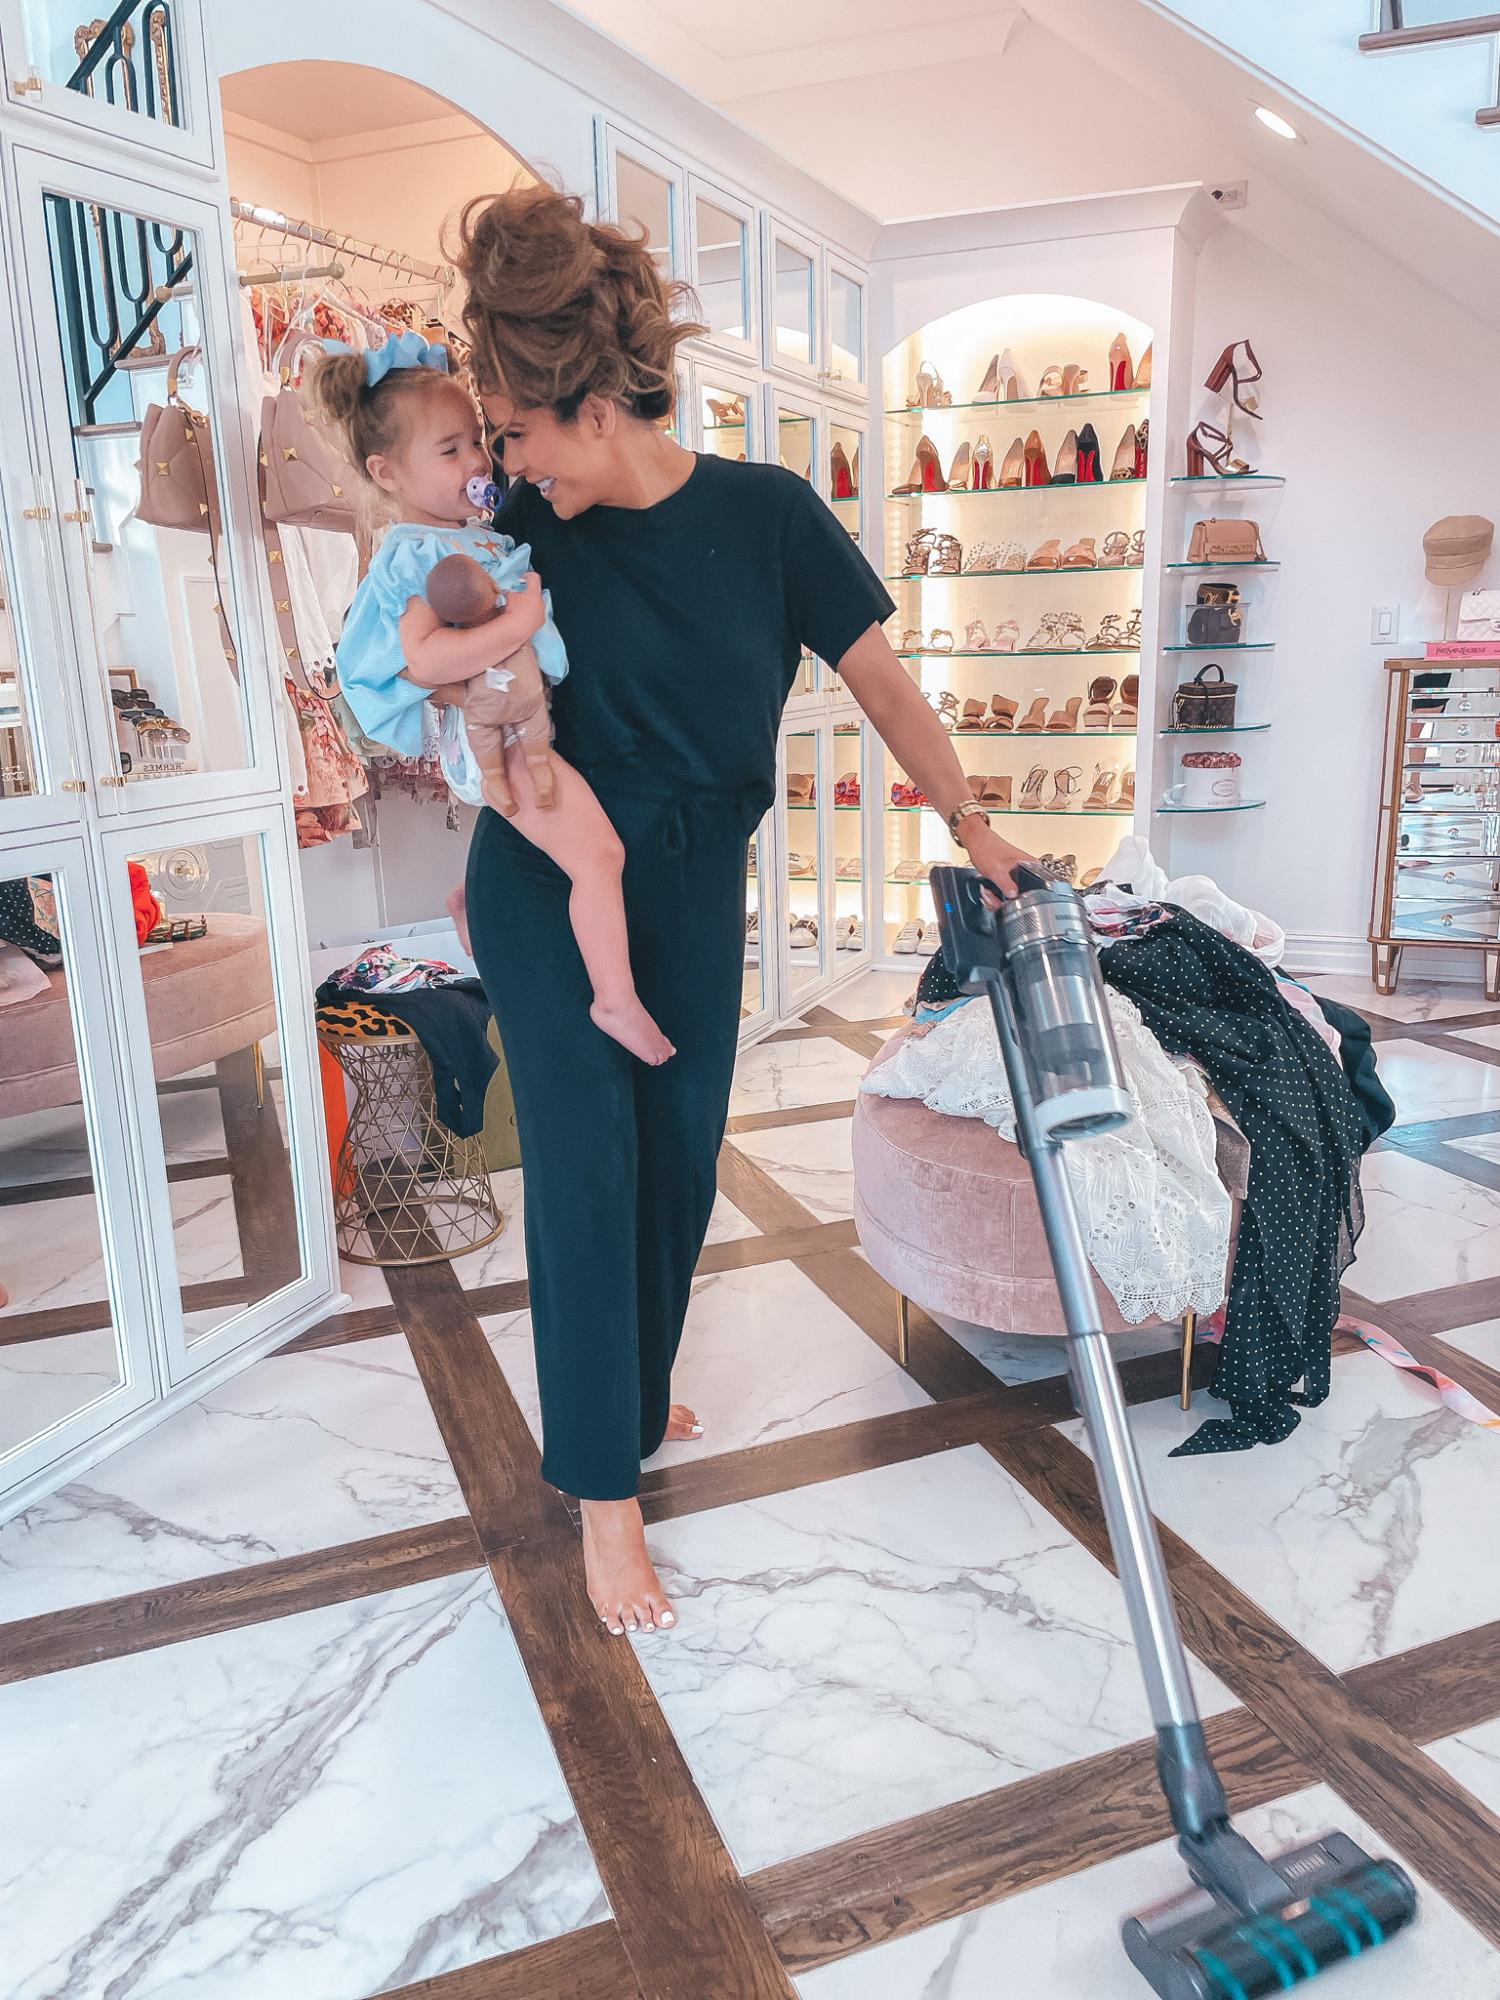 Emily ann gemma, work from home outfit, best loungewear, Nordstrom loungewear, soft pajamas, best cordless vacuum, Emily ann gemma | June Instagram Recap by popular US fashion blog, The Sweetest Thing:holding her young daughter while wearing a black t-shirt and black jogger pants and vacuuming her floor.